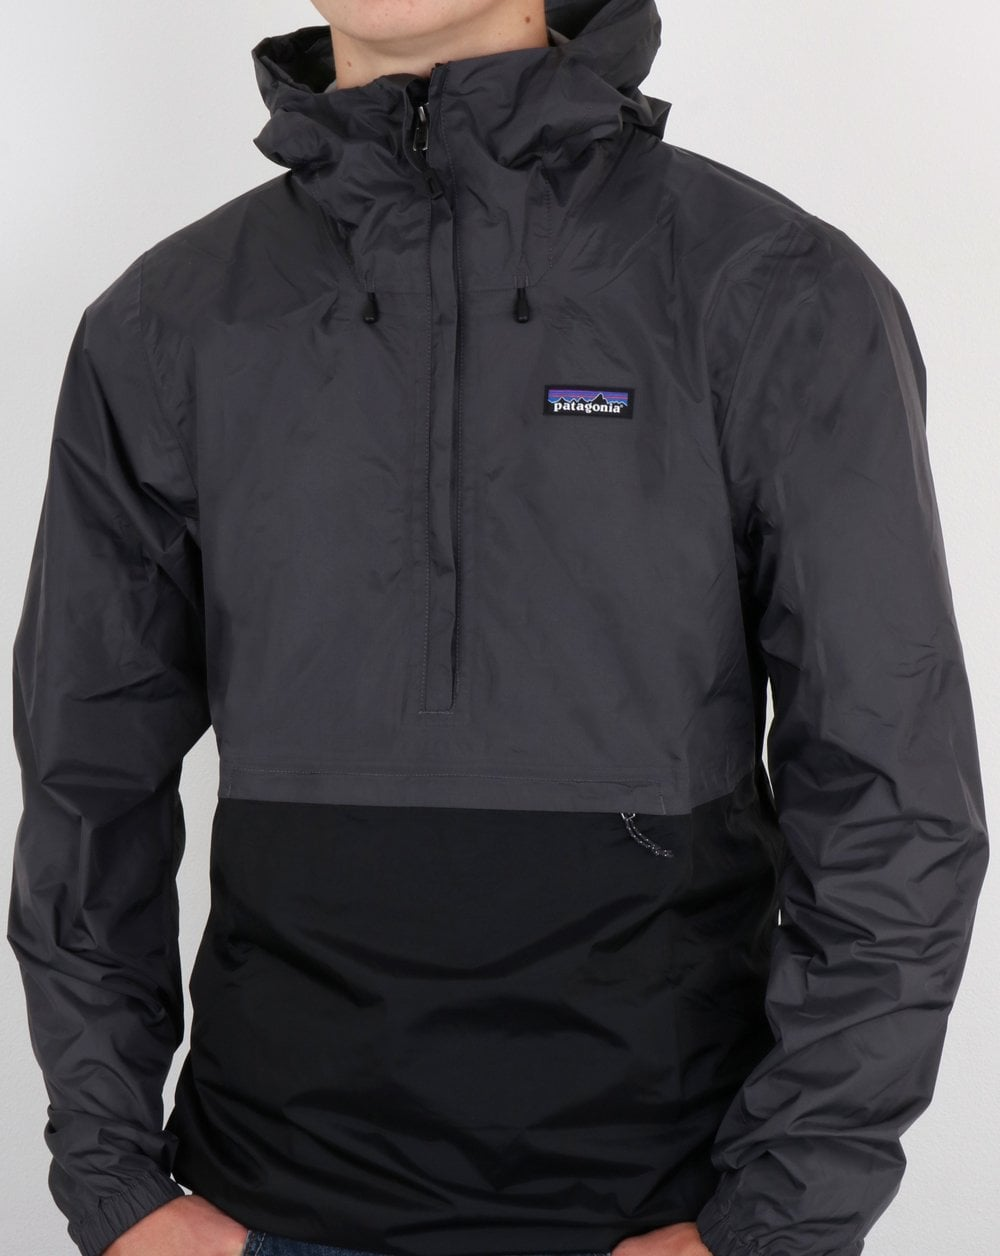 promotion world-wide renown top-rated original Patagonia Torrentshell Pullover Jacket Forge Grey